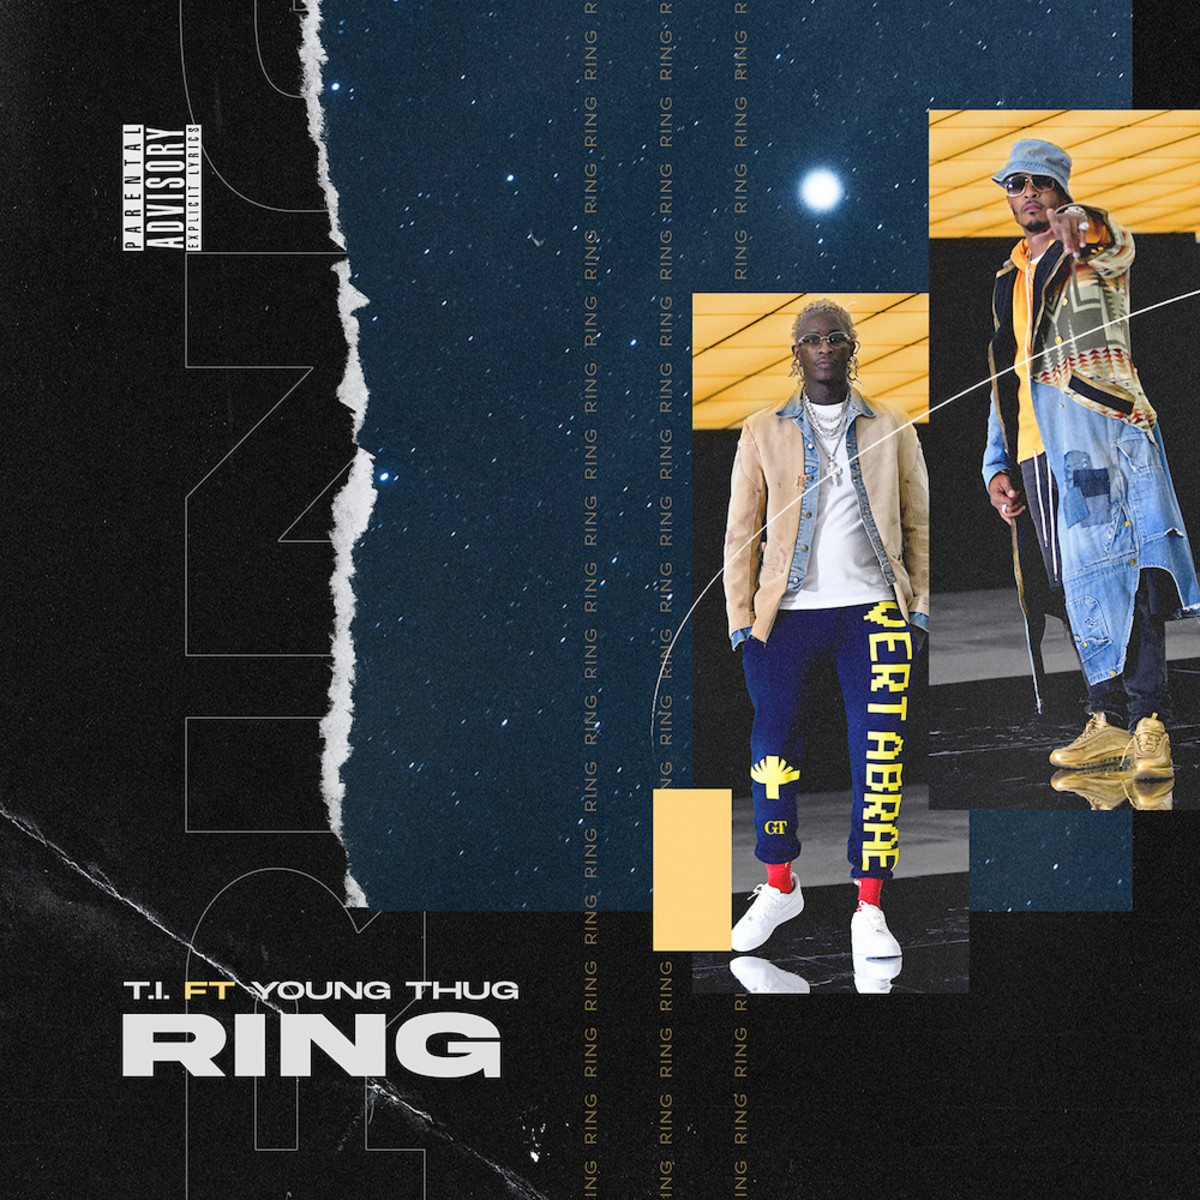 T.I ft Young Thug Ring